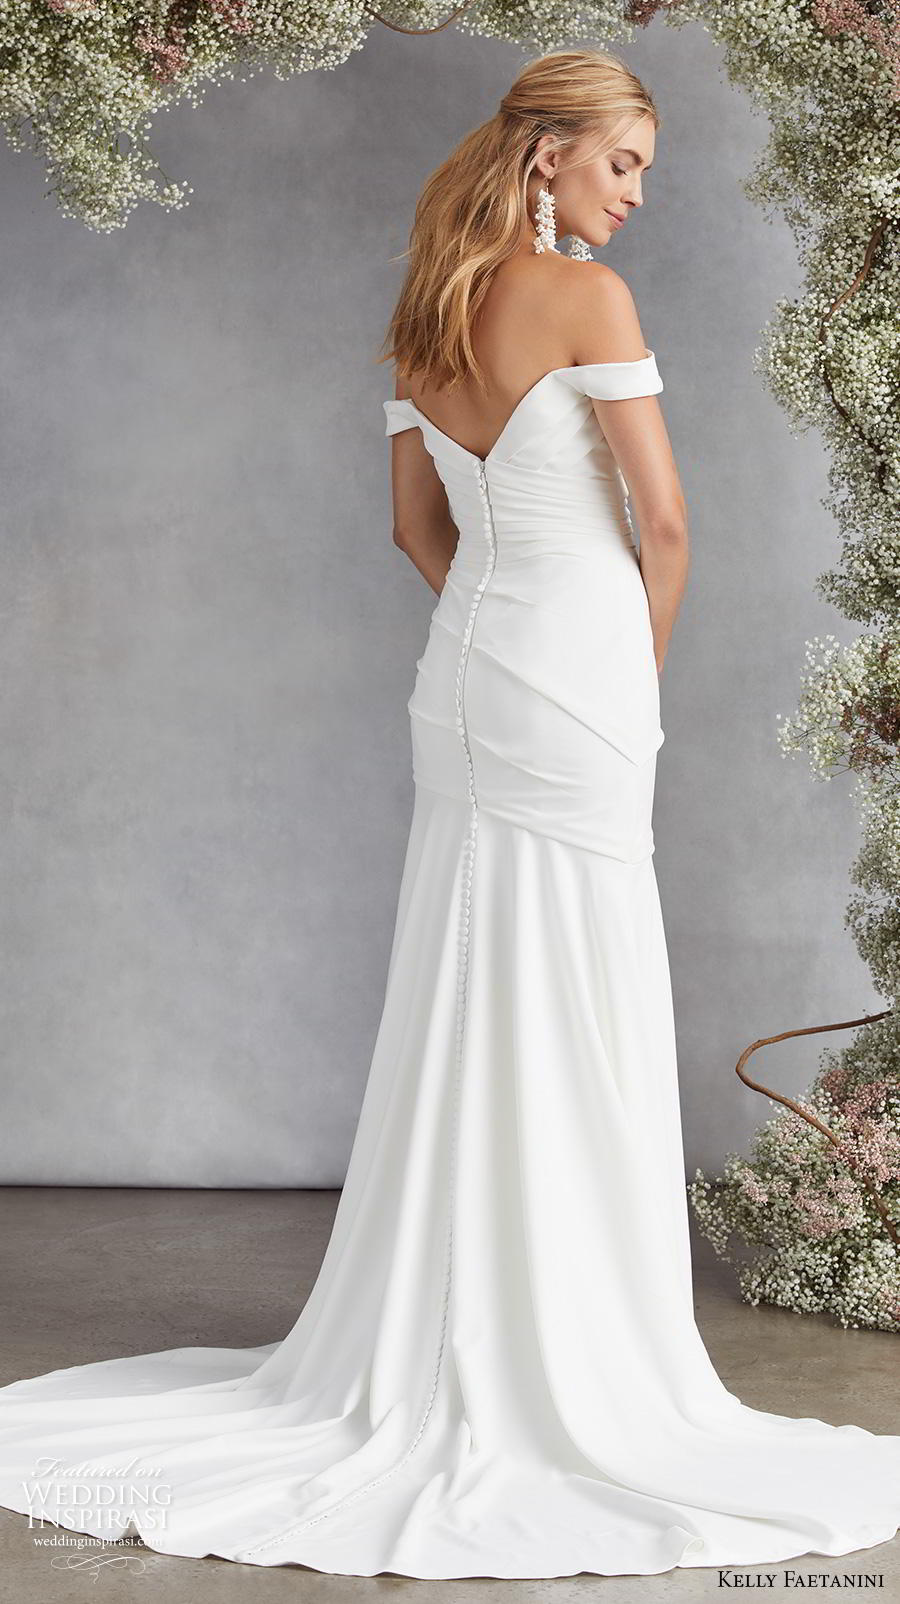 kelly faetanini fall 2020 bridal off the shoulder sweetheart neckline ruched bodice romantic simple minimalist elegant mermaid wedding dress mid back medium train (6)  bv